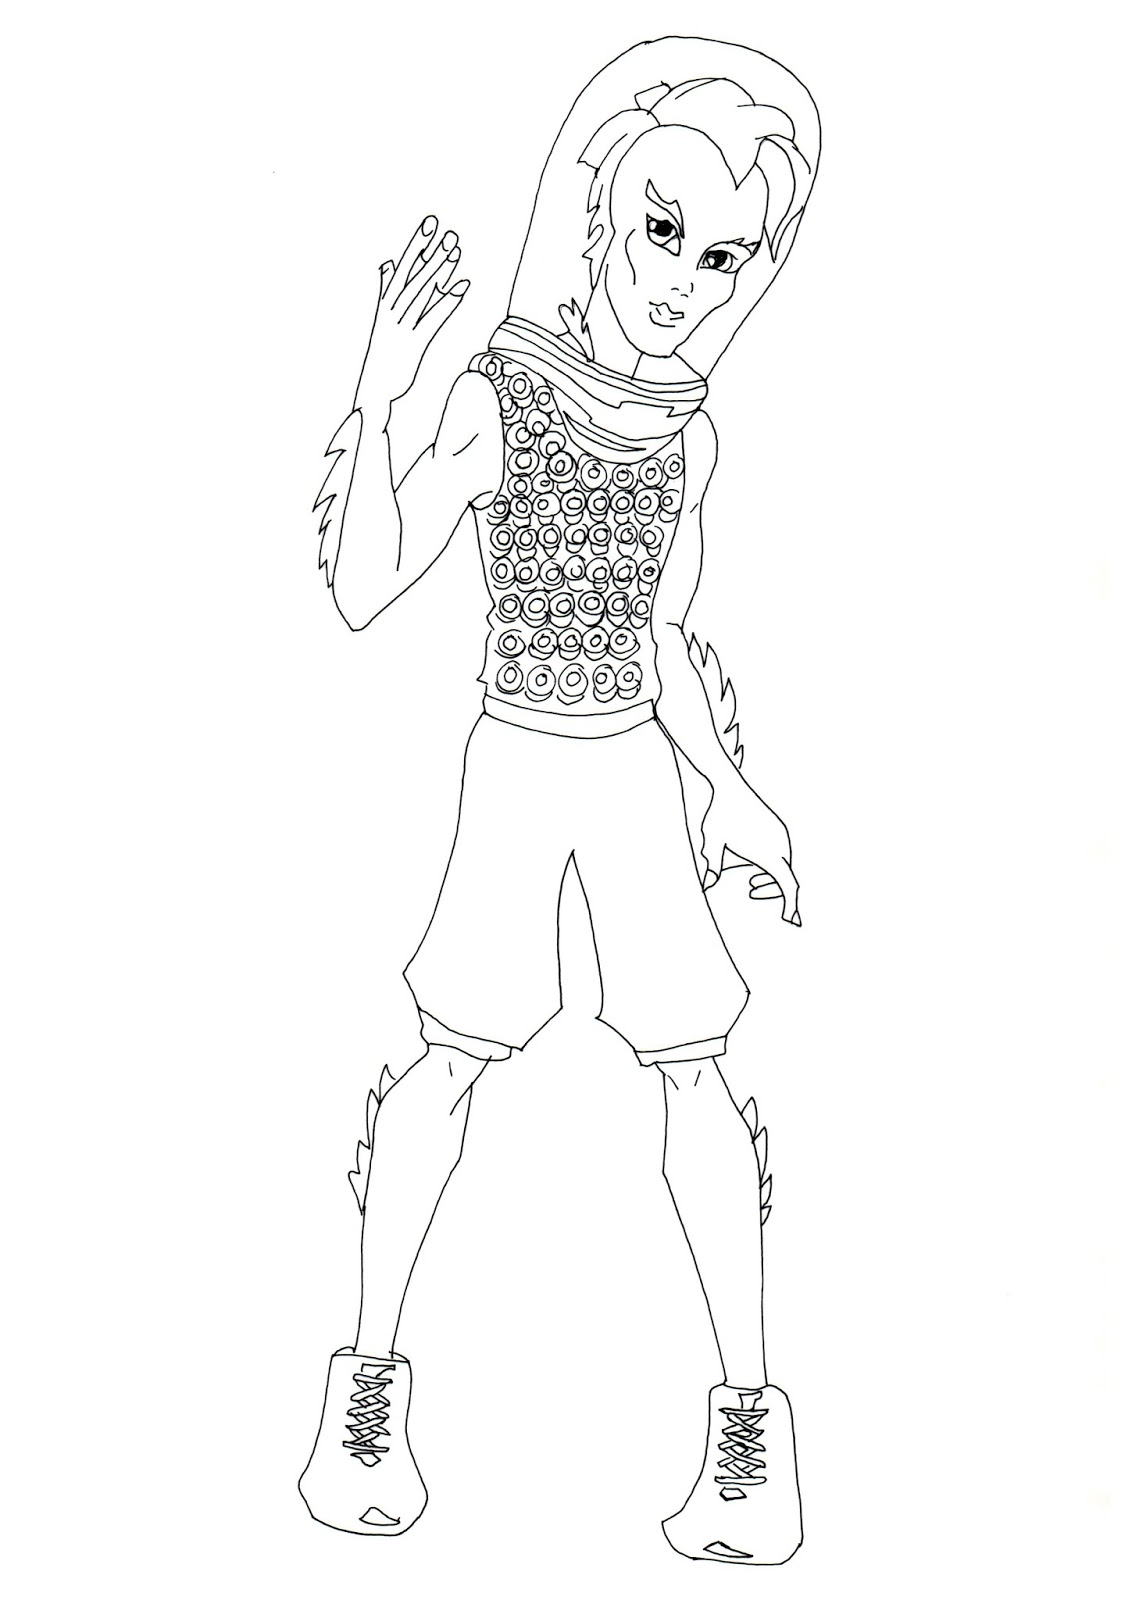 Free Printable Monster High Coloring Pages: Gil Webber